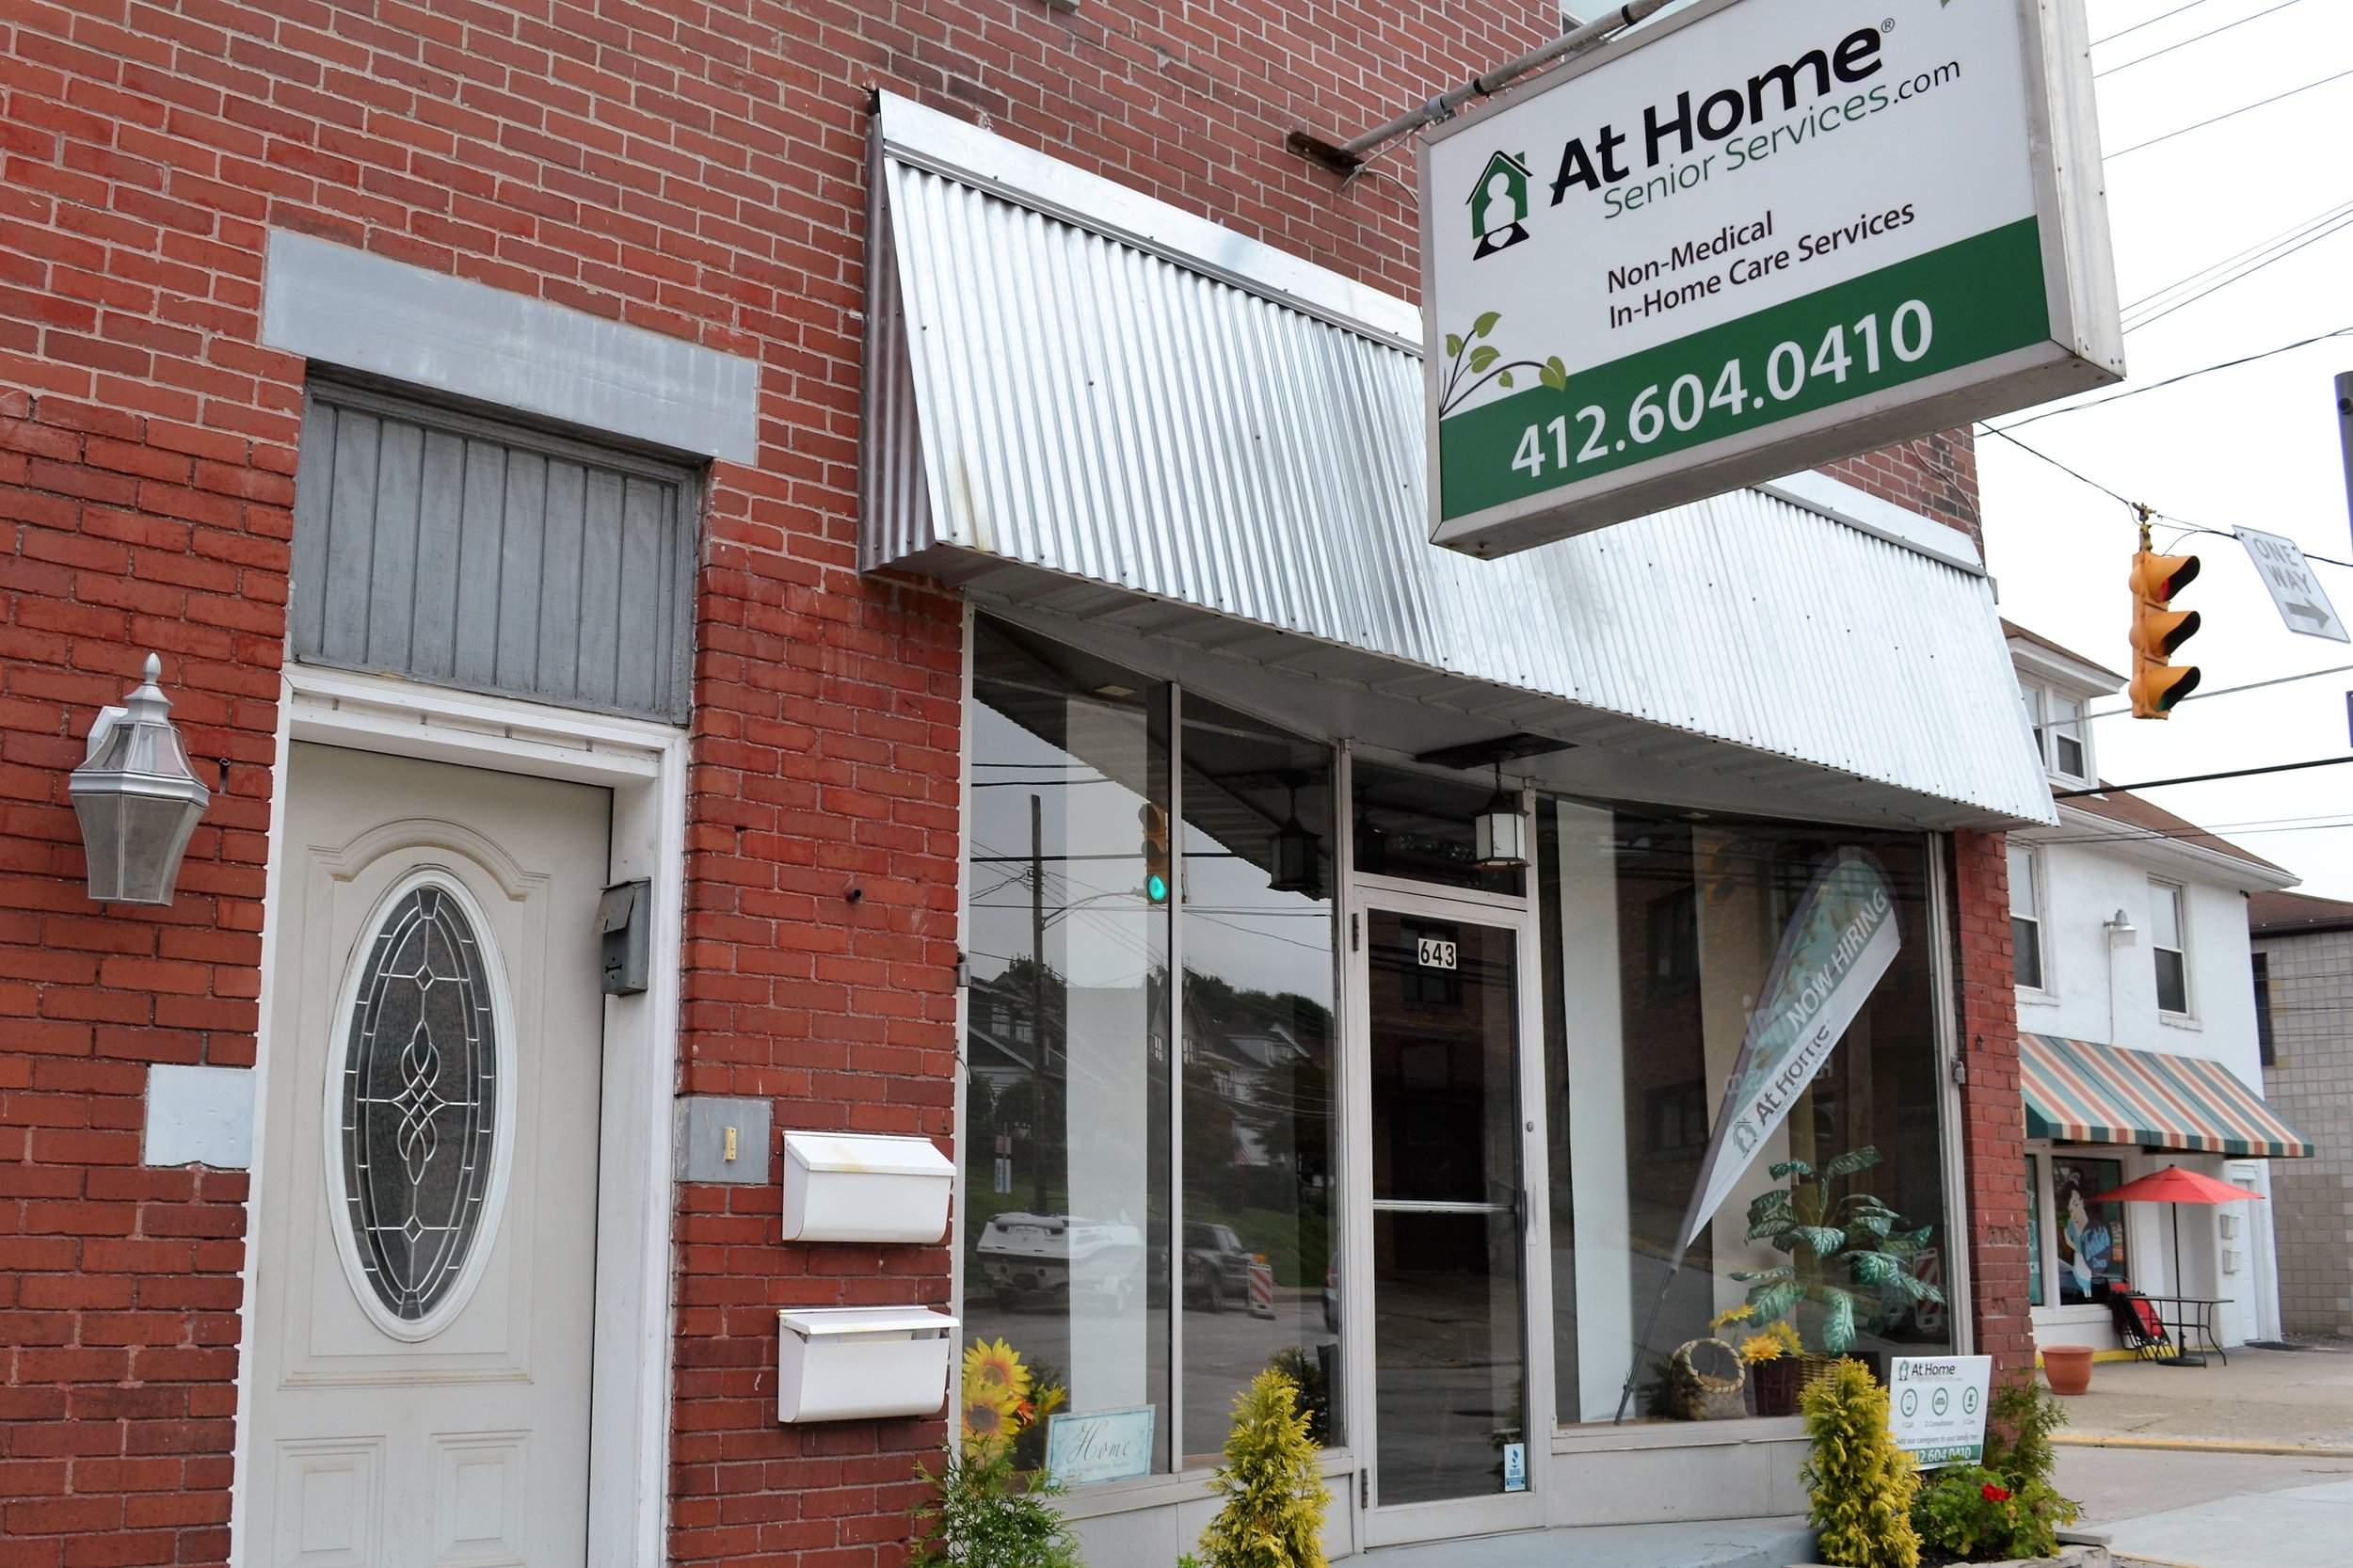 At Home Senior Services - 643 5th Ave, (412) 604-0410